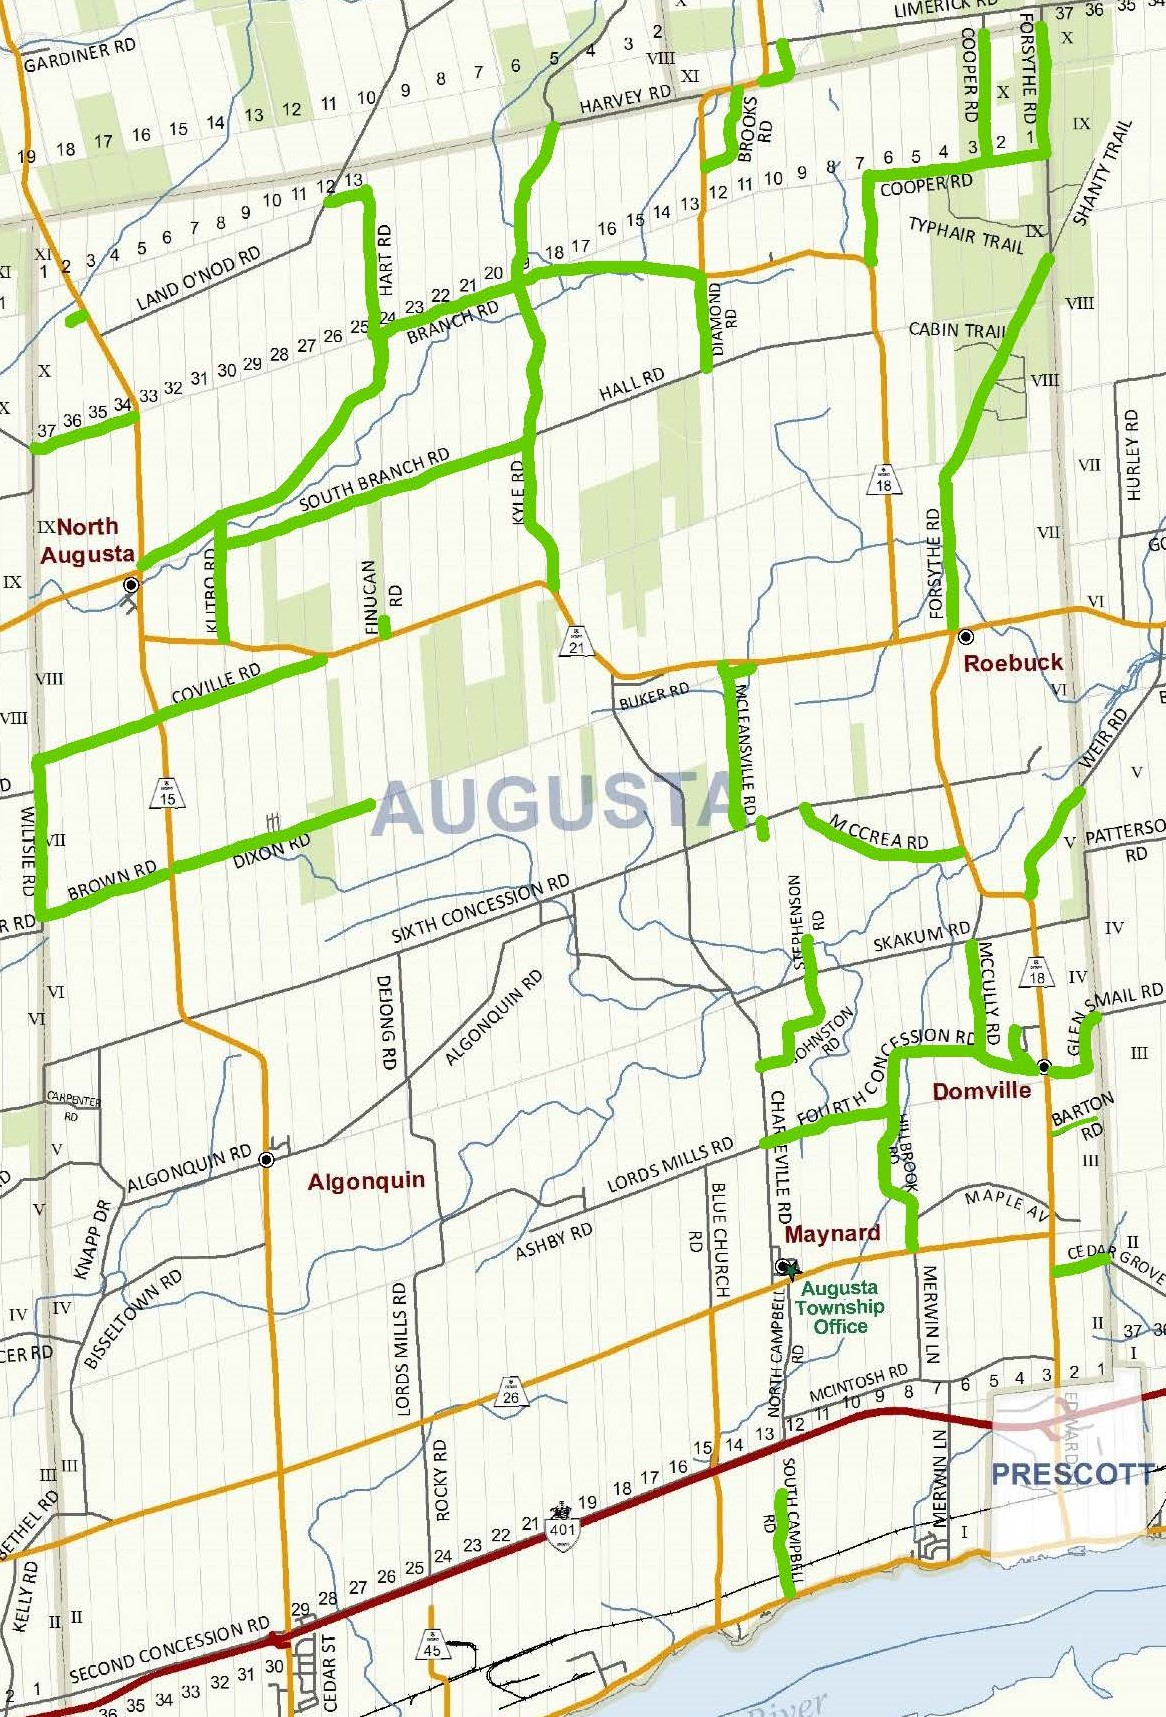 township map with the roads to be sprayed marked on it